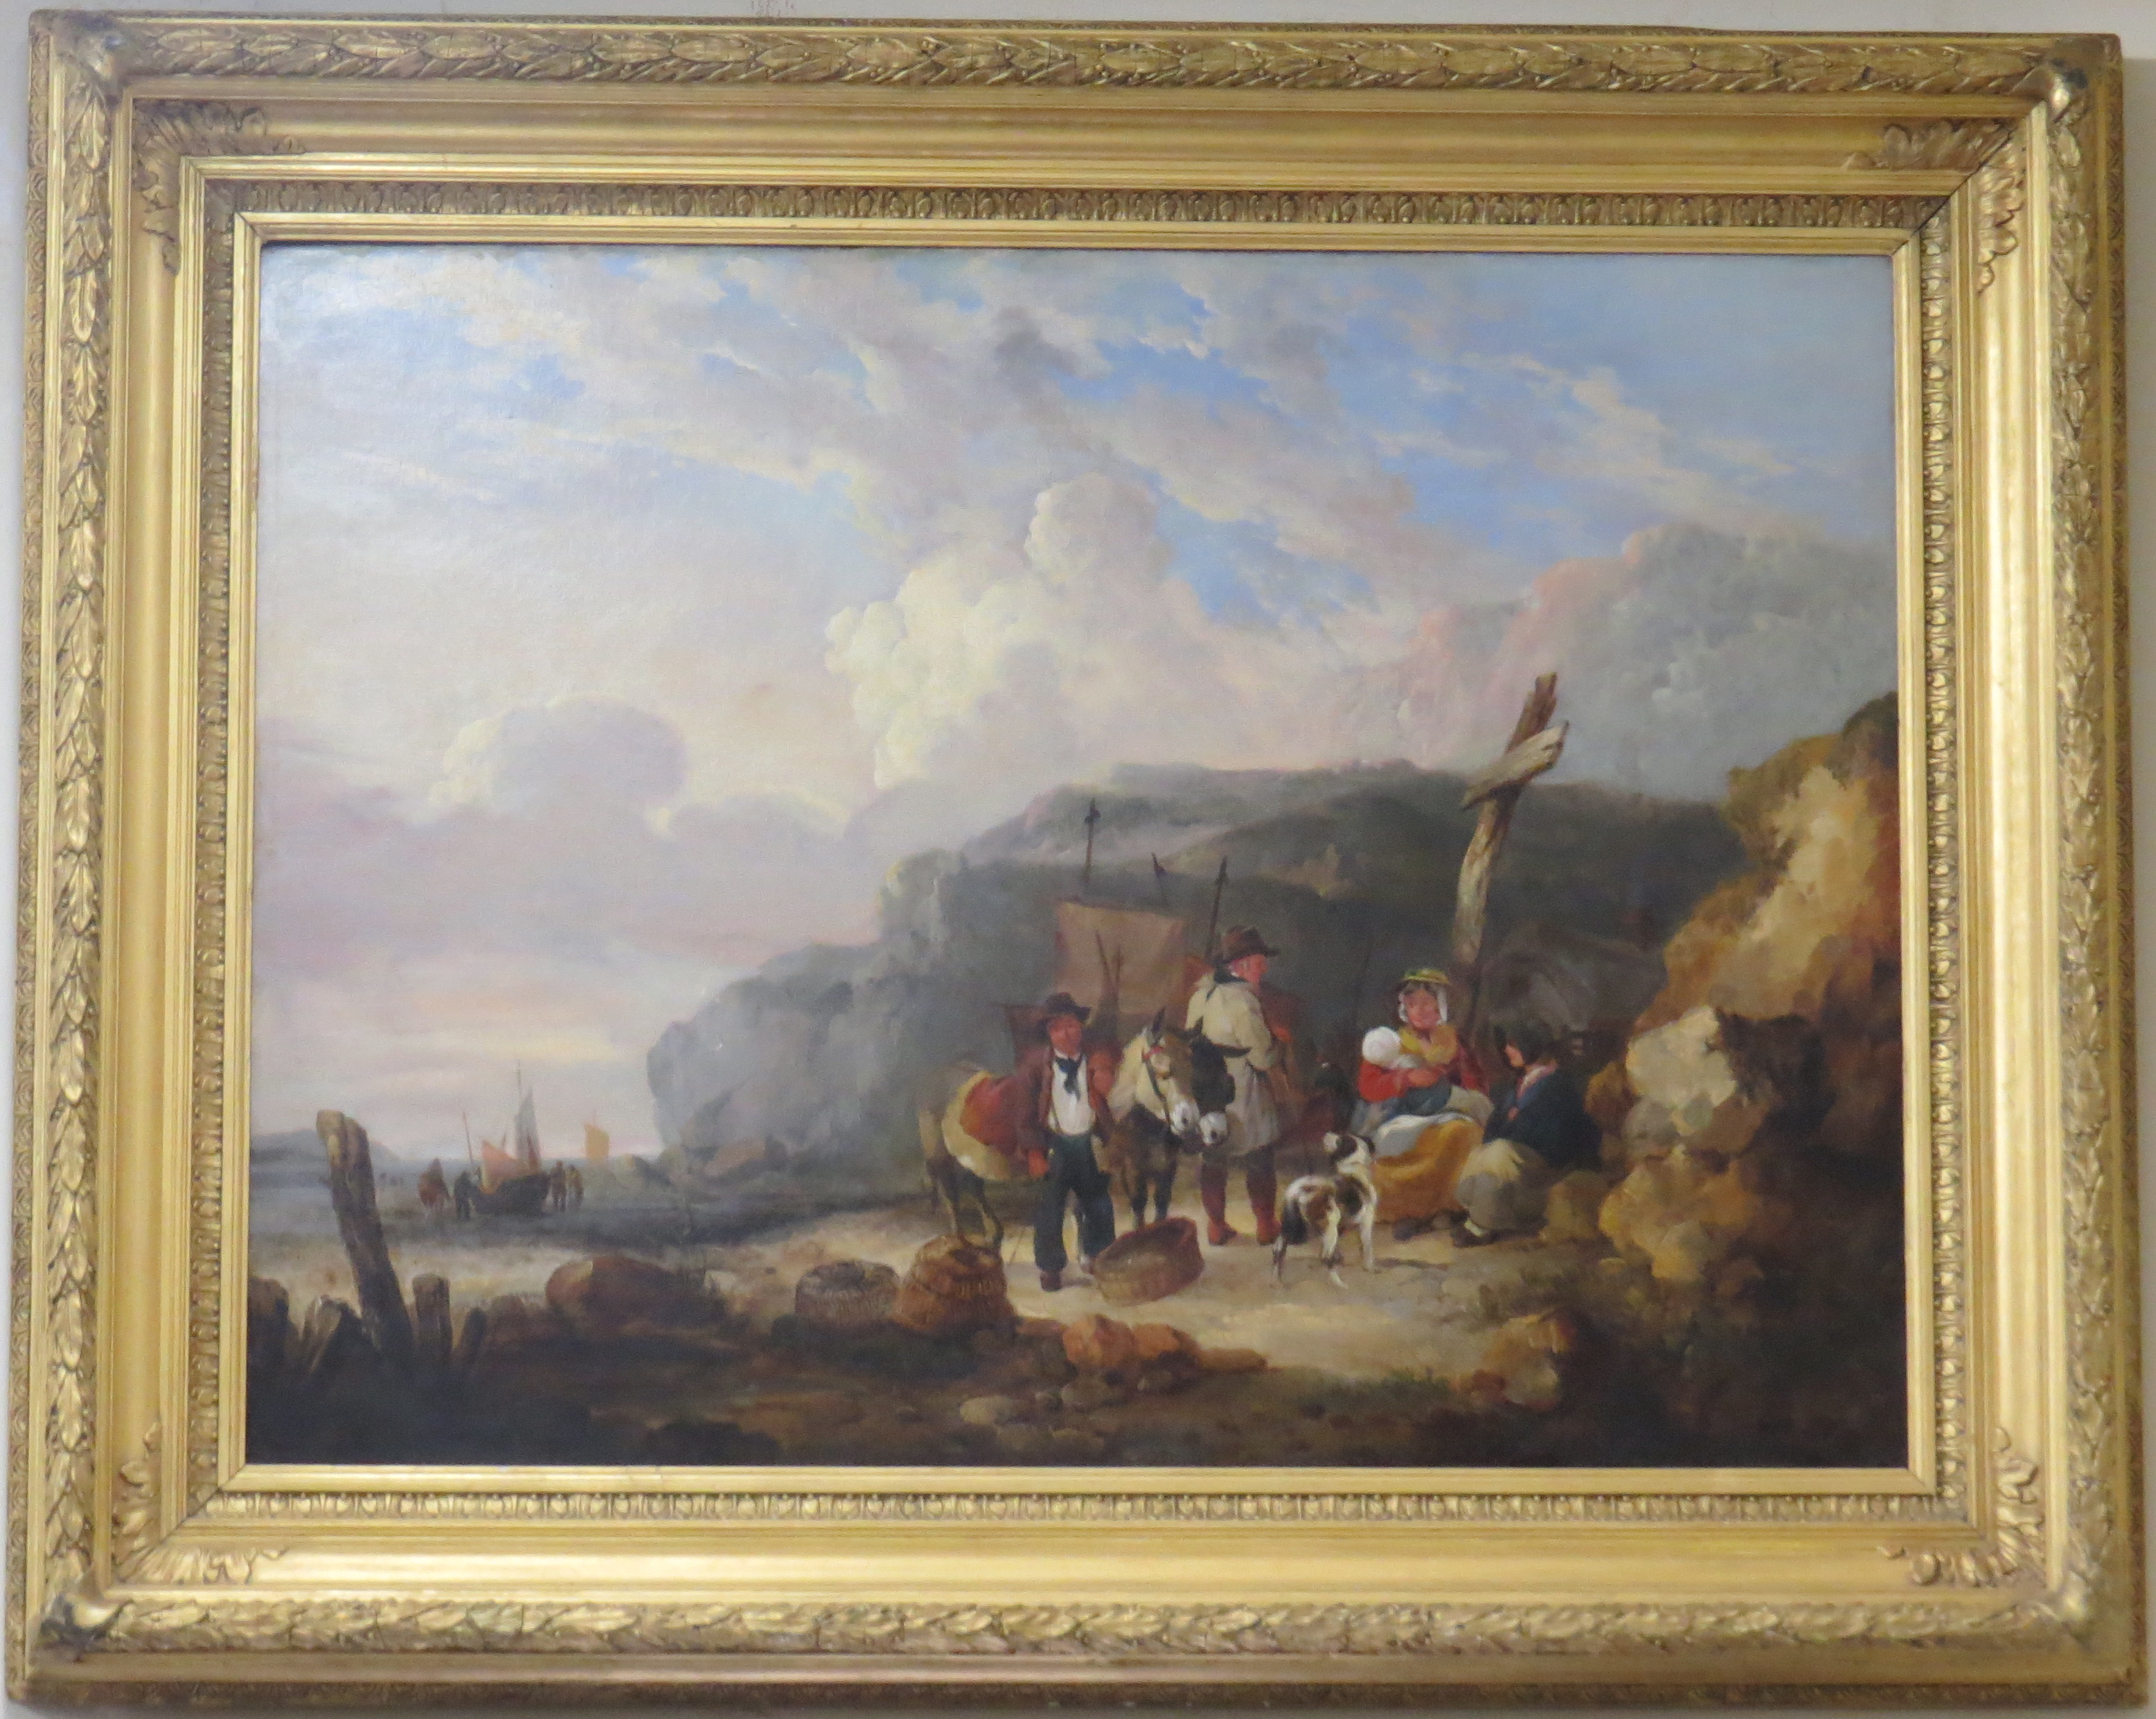 Oil on Canvas of a Coastal Scene, Signed W. Shayer (1811-1892)